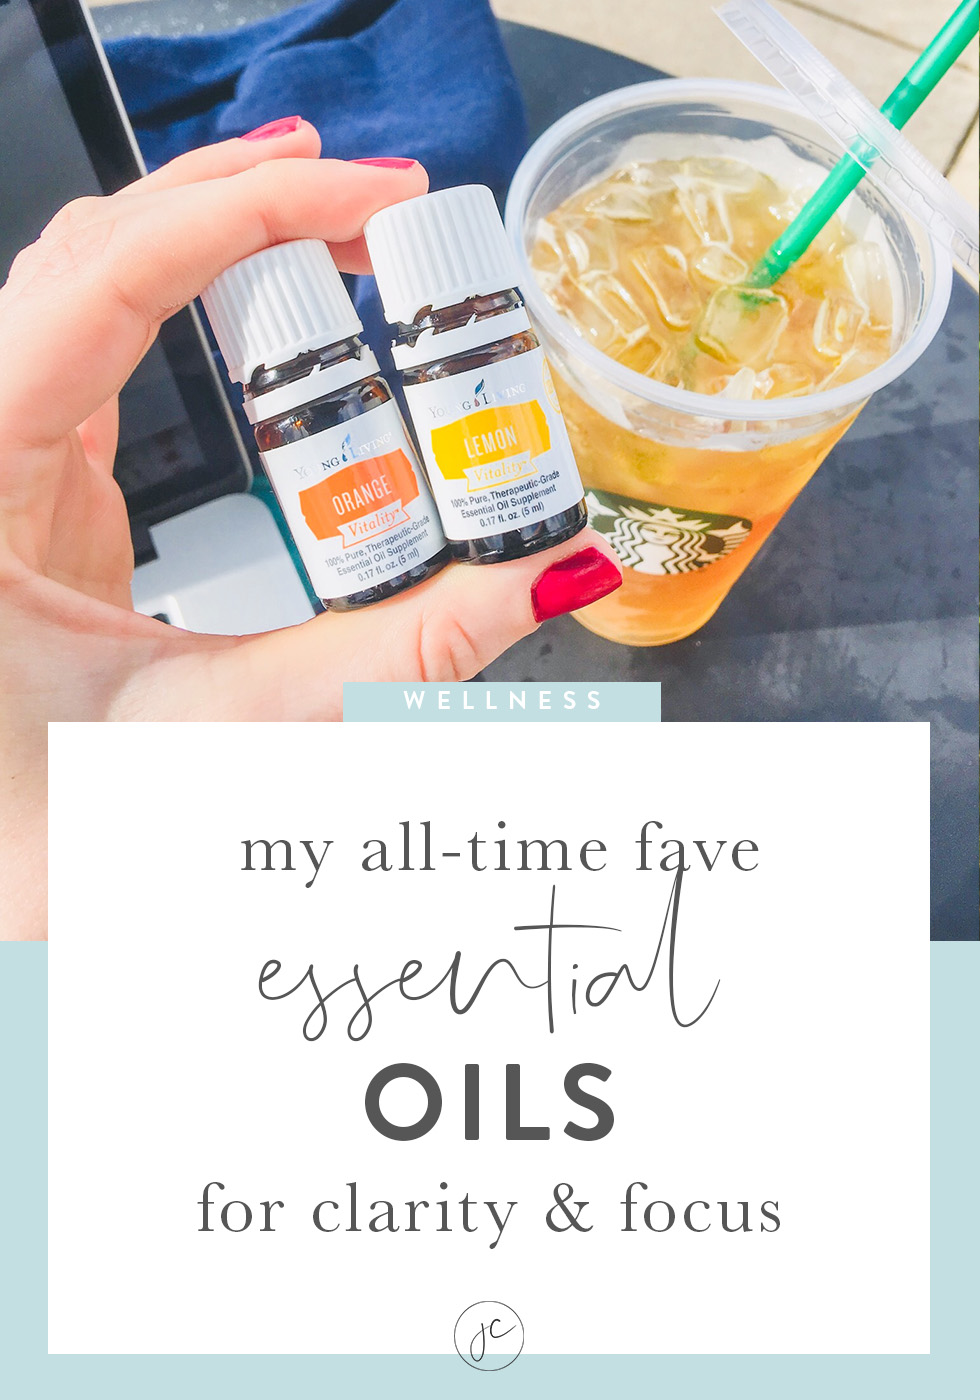 My All-Time Fave Essential Oils for Clarity & Focus